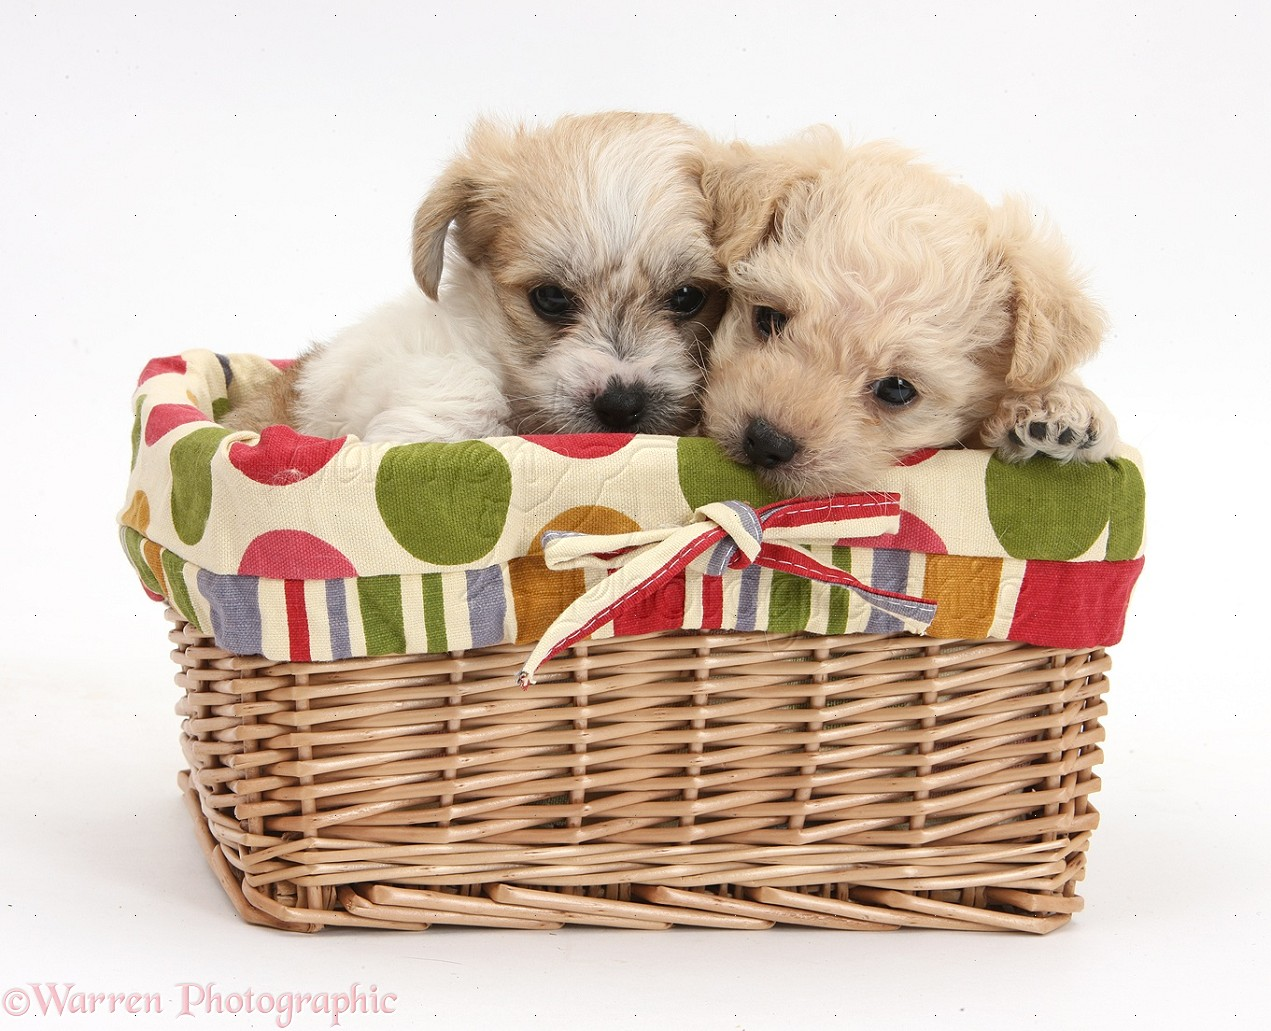 WP37385 Bichon Frisé x Yorkshire Terrier pups, 6 weeks old, in a ...